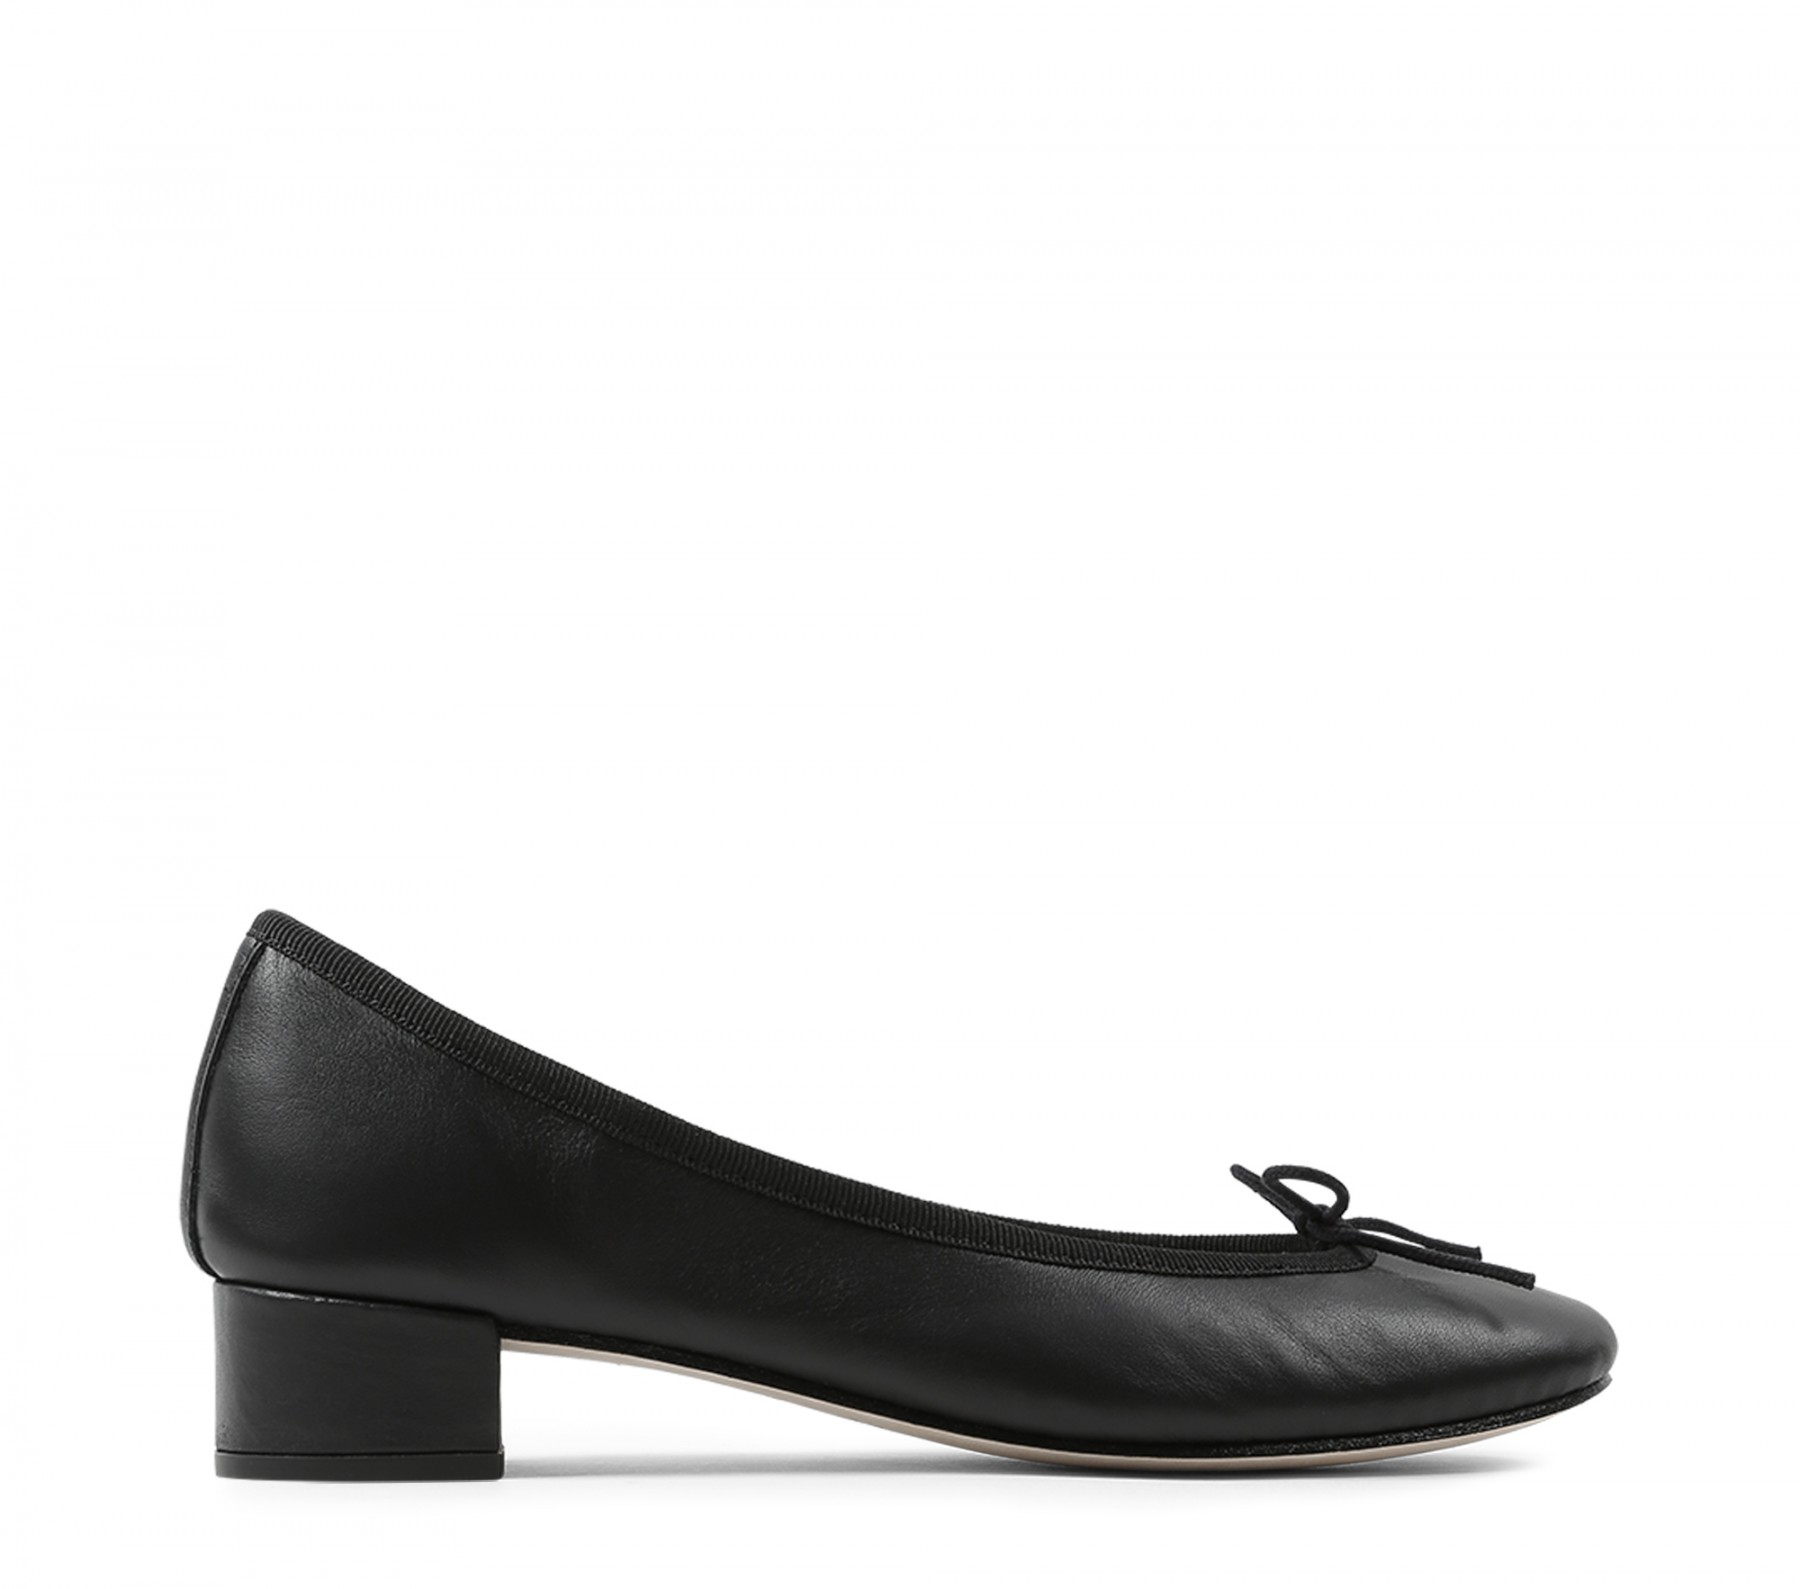 Repetto Low heel ballerina shoes Sale Official Site Free Shipping Store Buy Cheap Discount Cheapest Price Cheap Online Eastbay Cheap Price 49UhvDF16